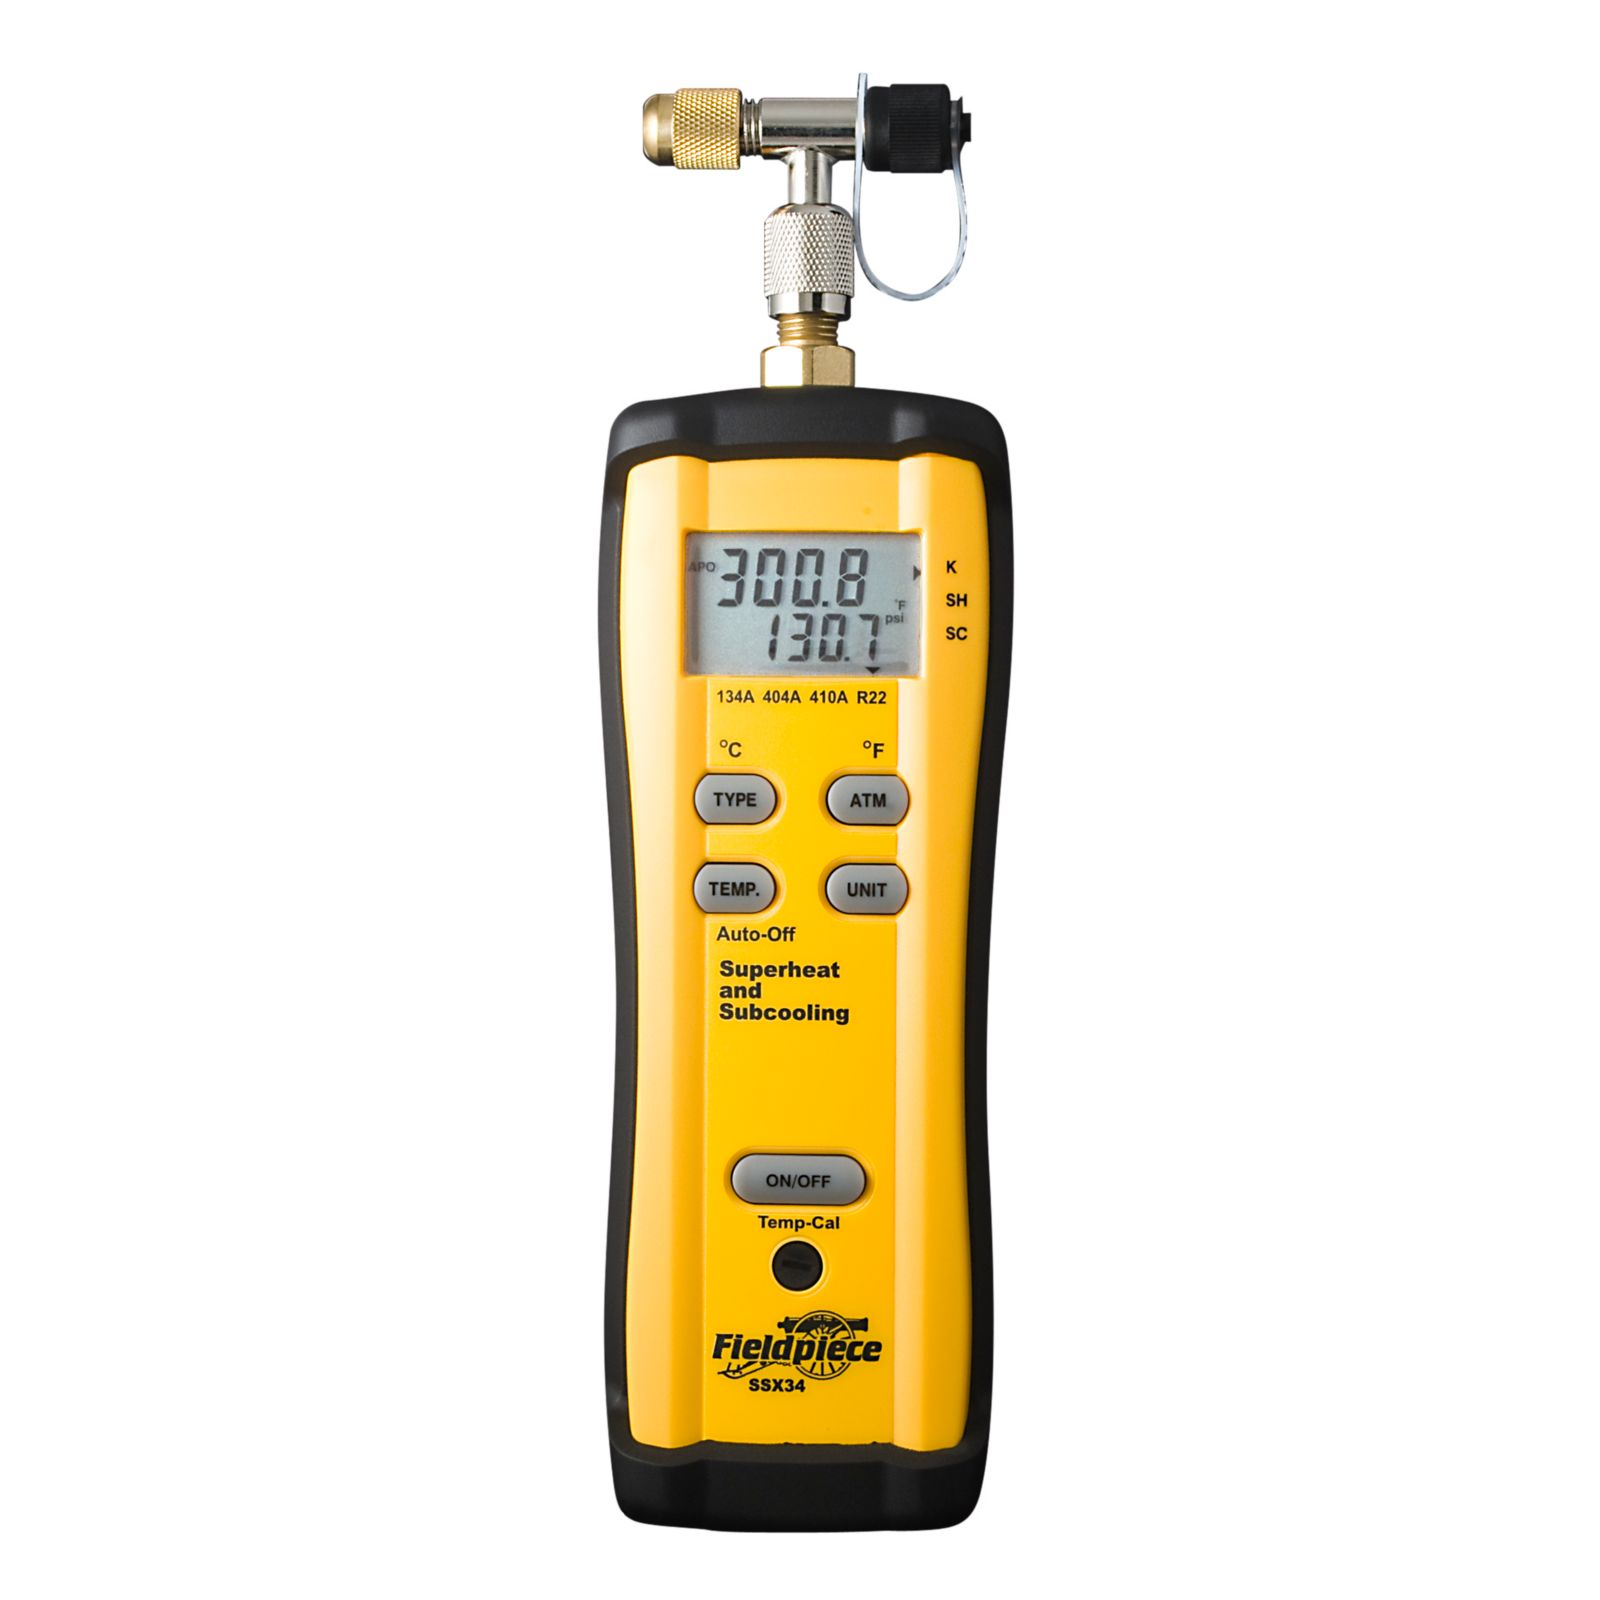 Fieldpiece SSX34 - Superheat amp And Subcooling Charging Meter